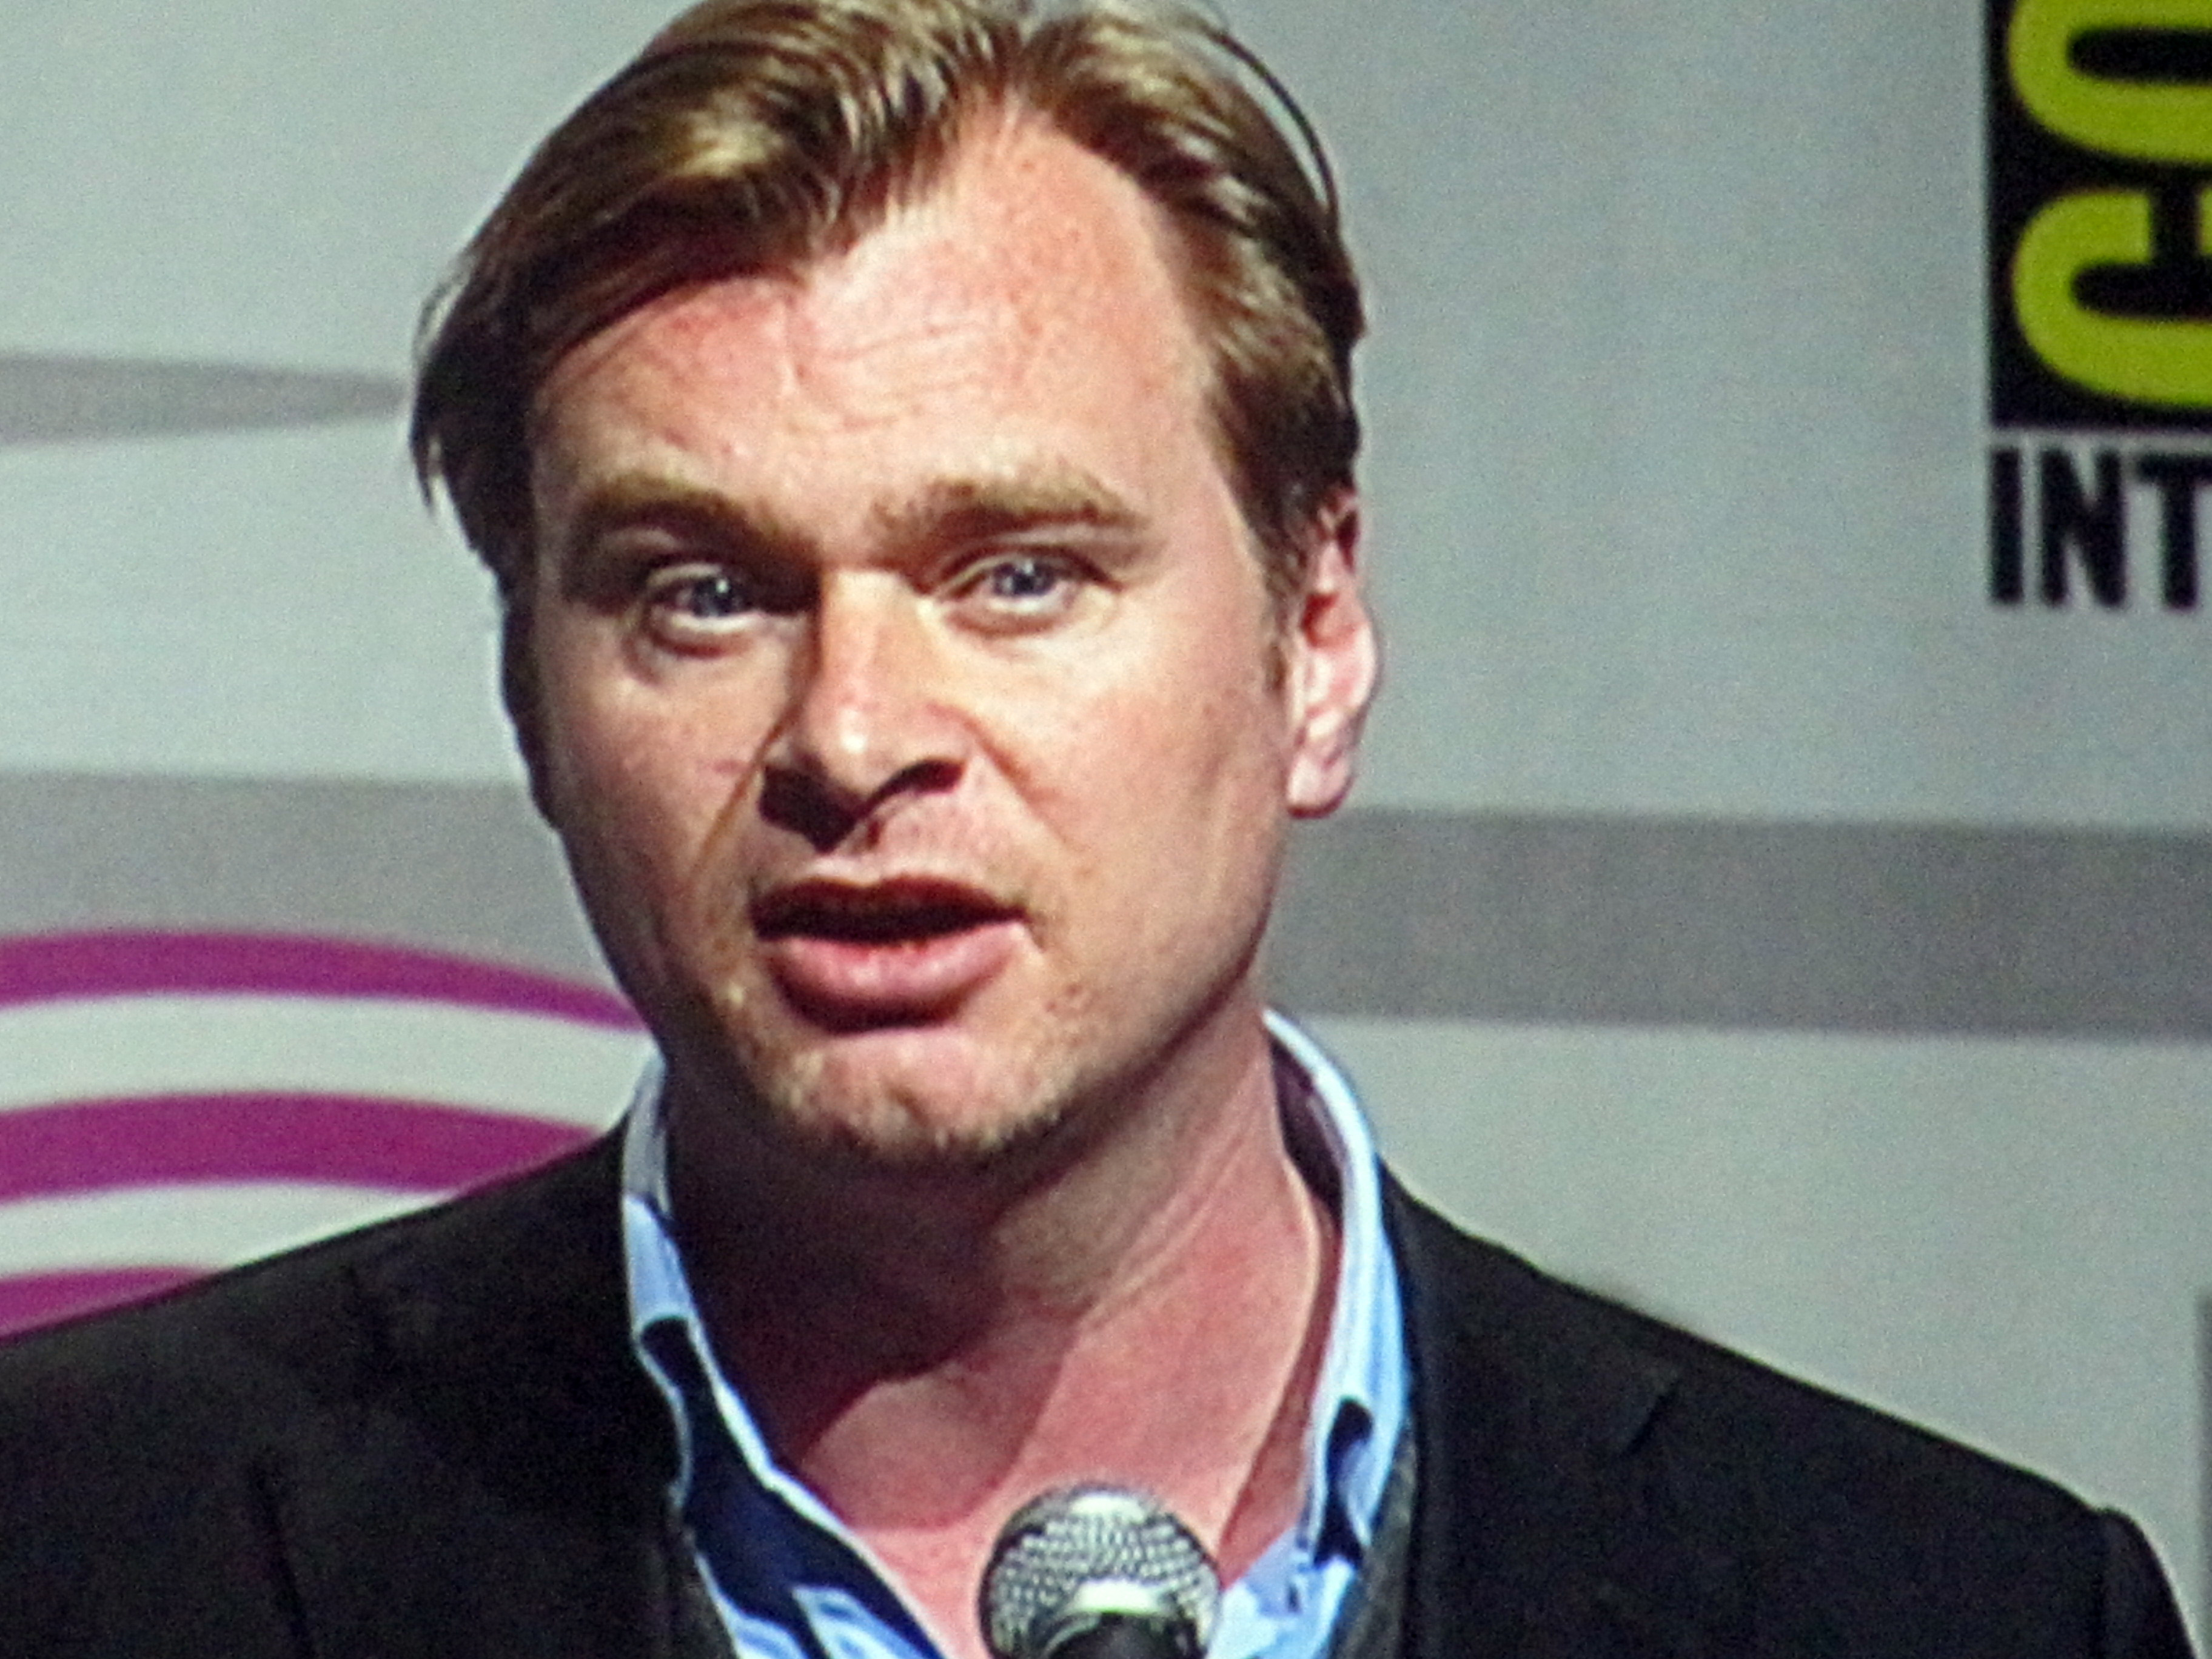 Photograph of Christopher Nolan